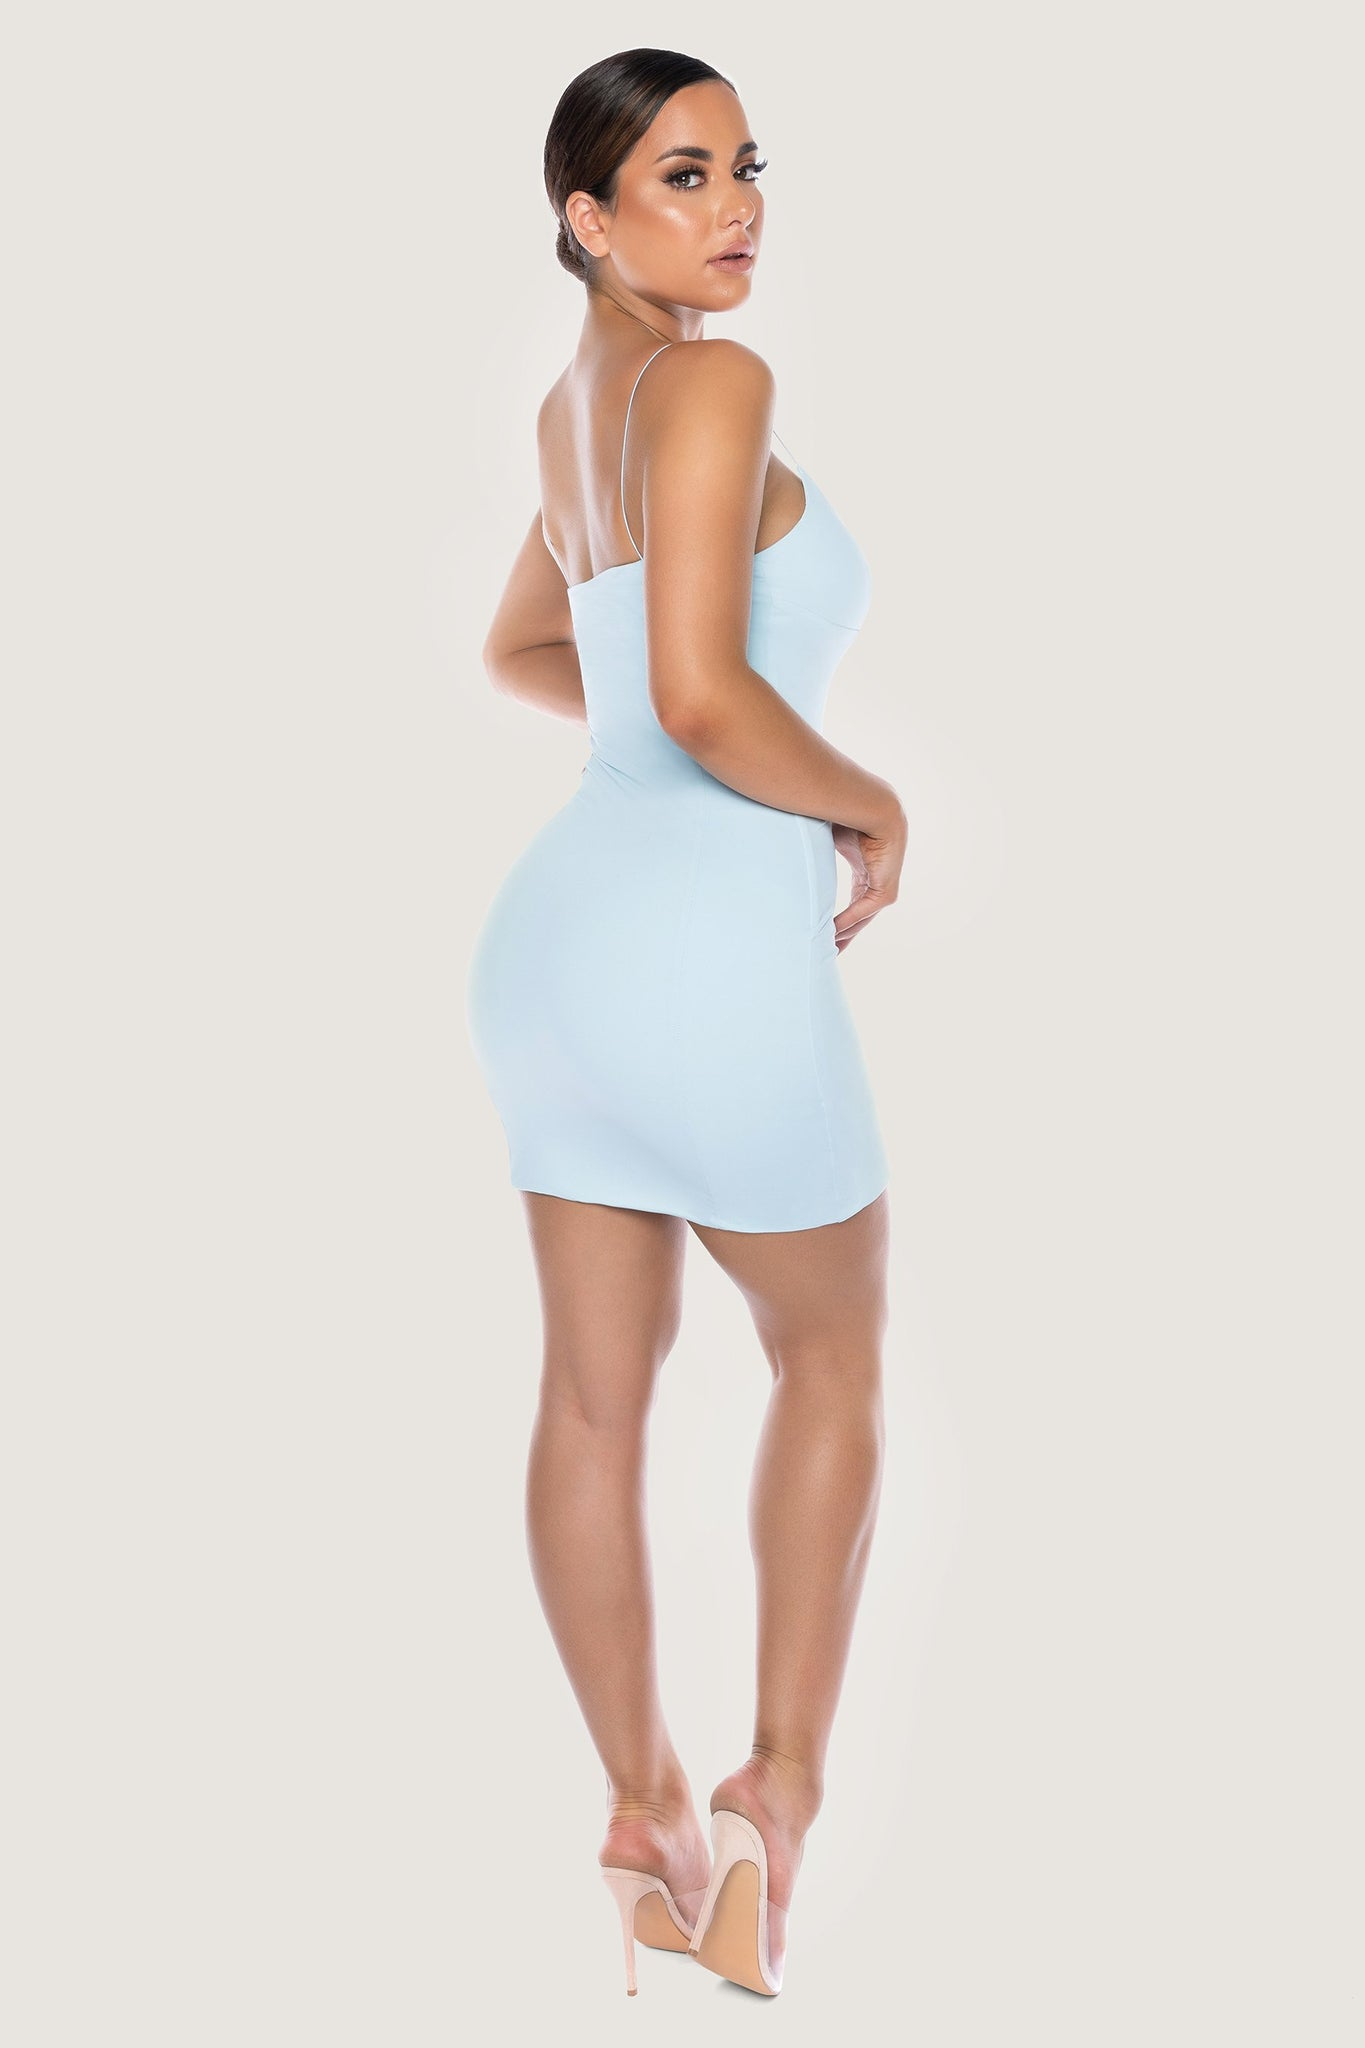 Cenza Thin Strap Bodycon Mini Dress - Baby Blue - MESHKI